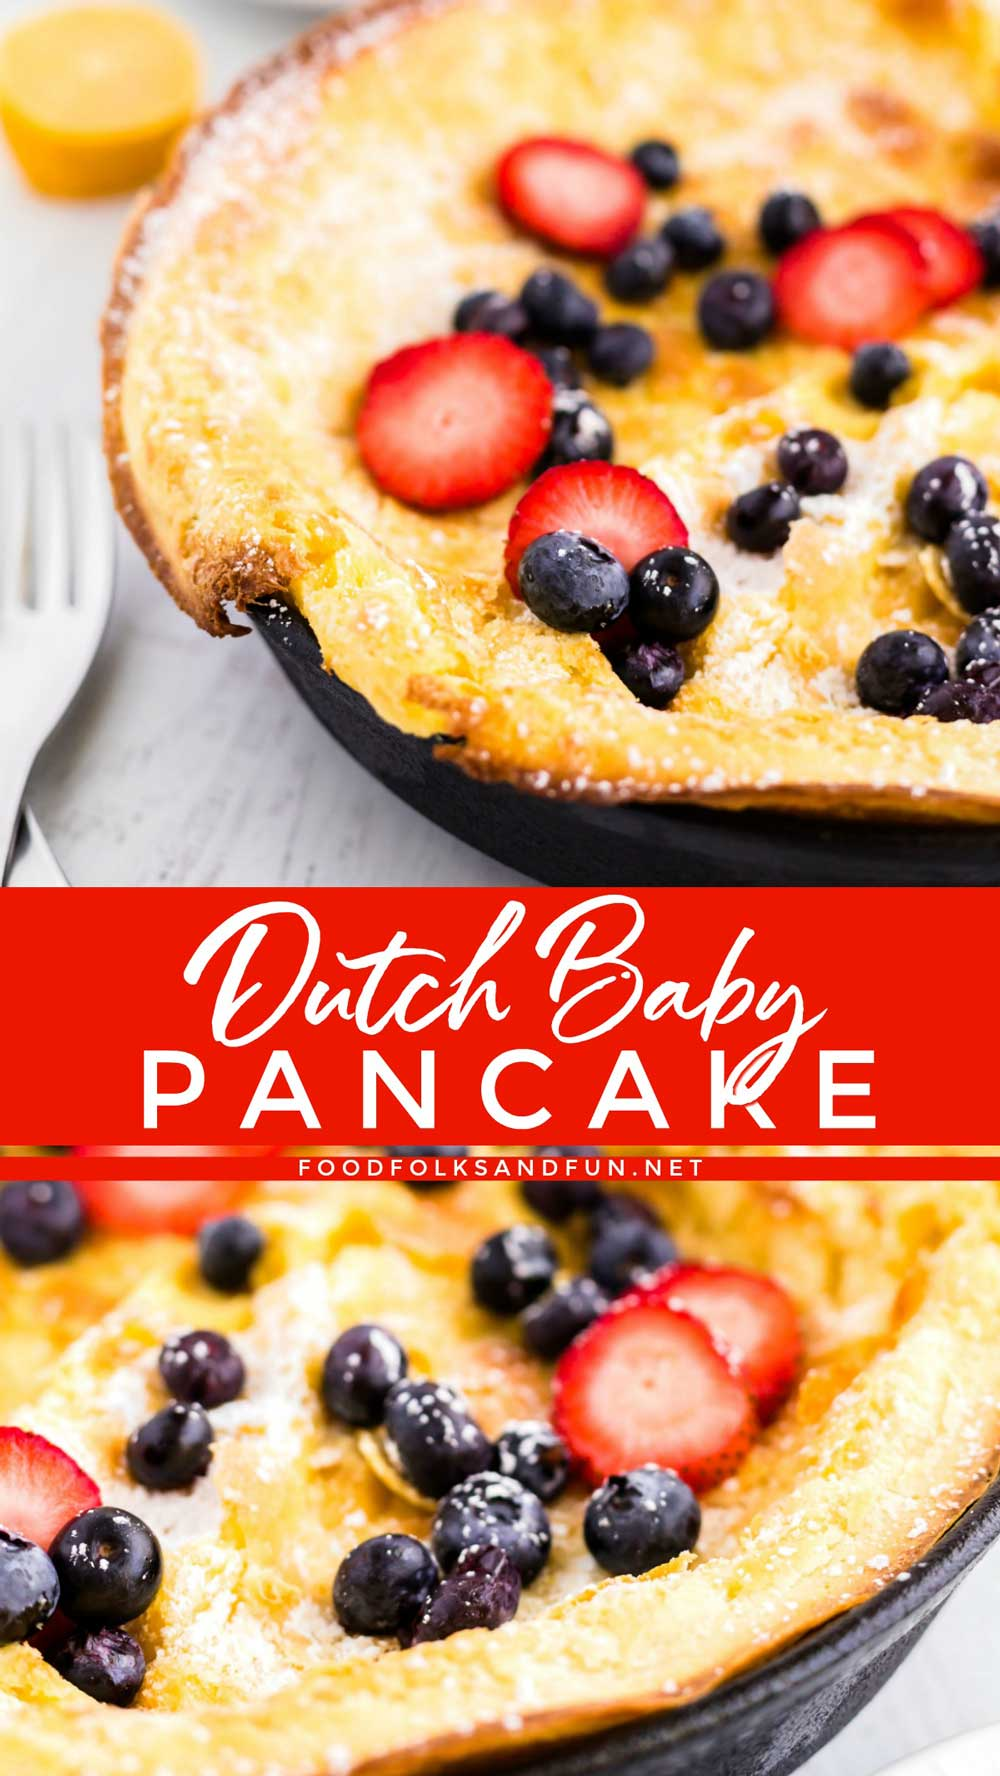 The crisp golden-brown edges and the custardy pancake interior makes this Vanilla Dutch Baby Pancake a favorite around the breakfast or brunch table! 